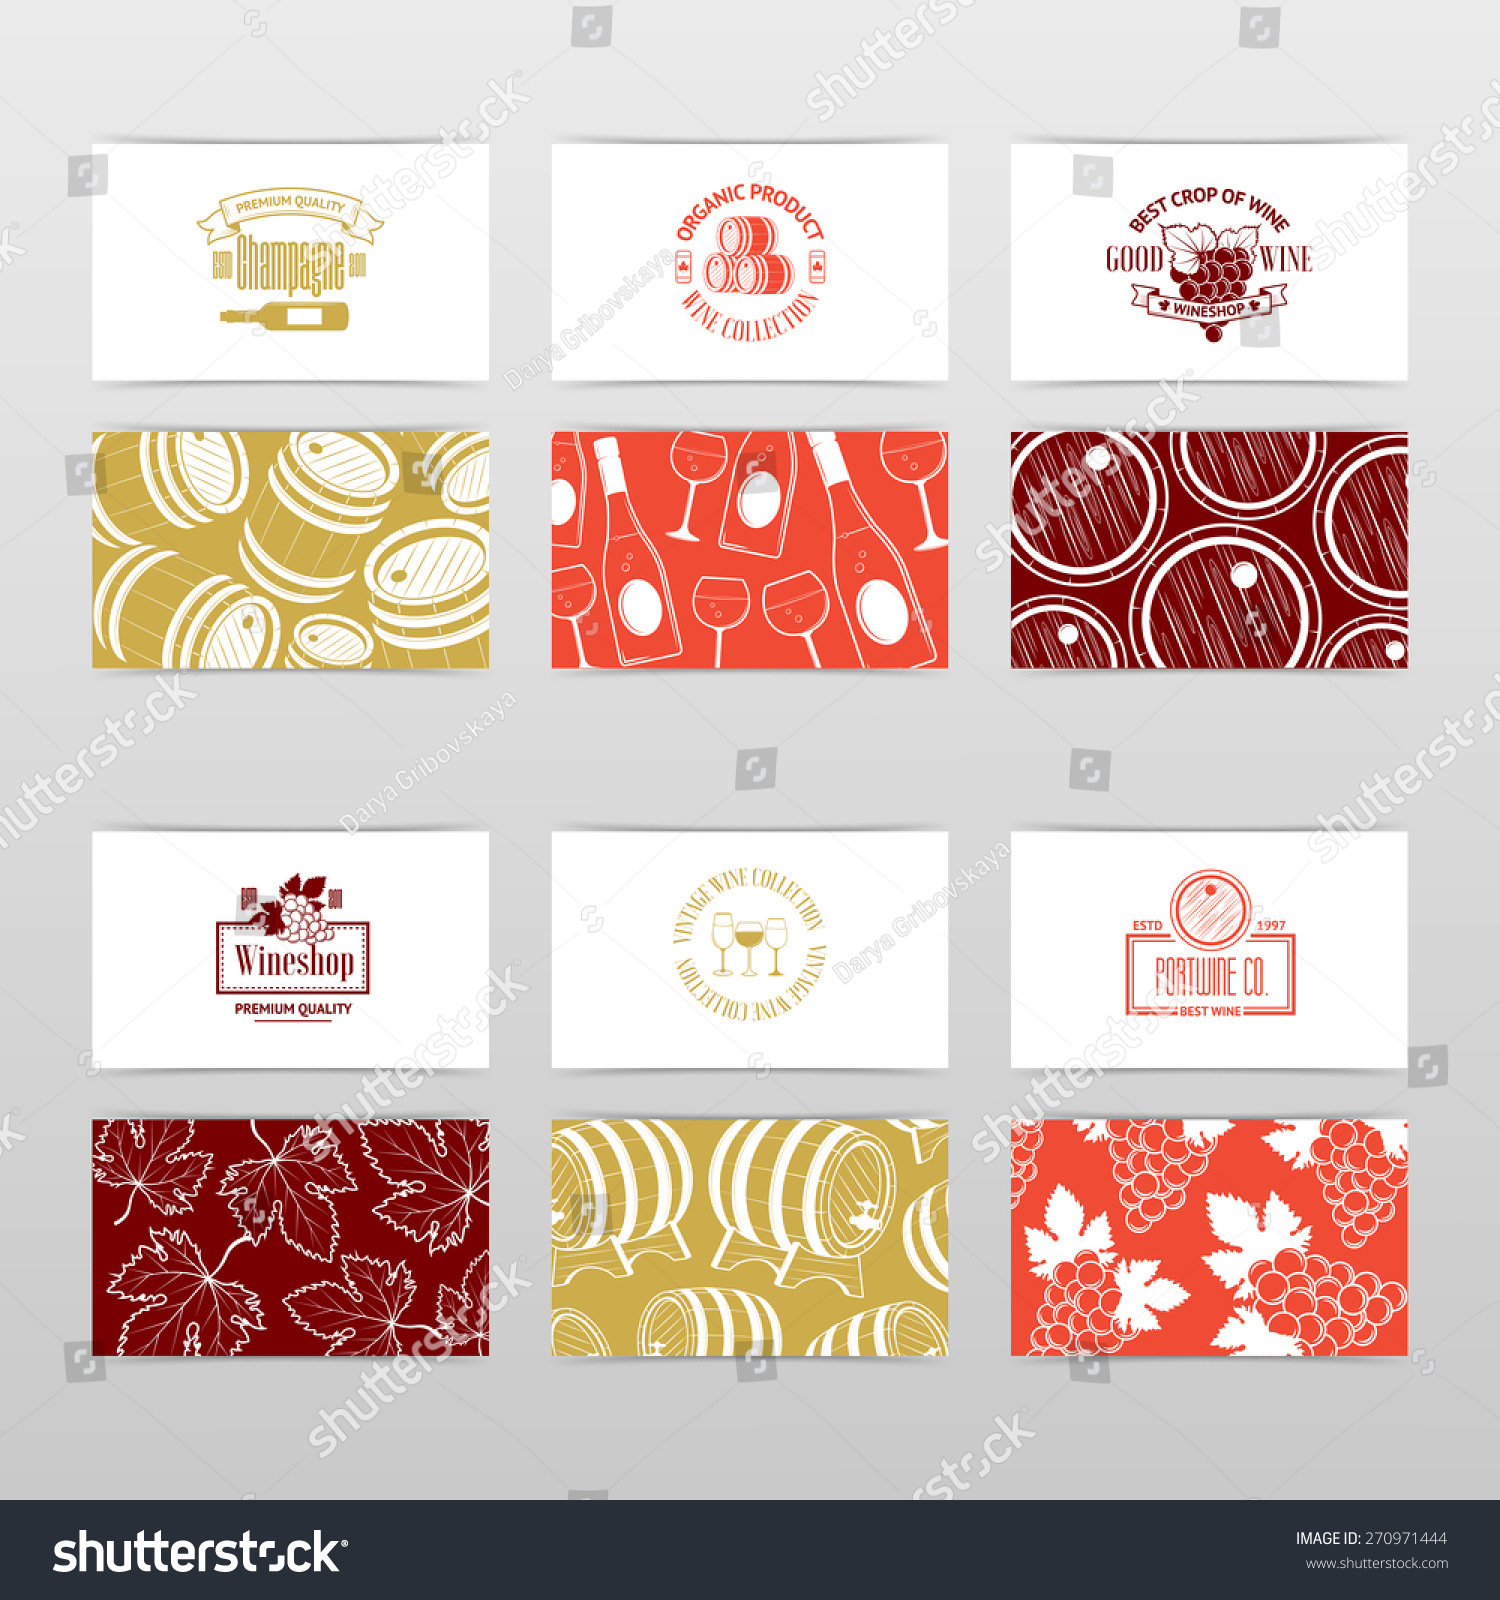 Set Wine Business Cards Templates Wine Stock Vector 270971444 ...